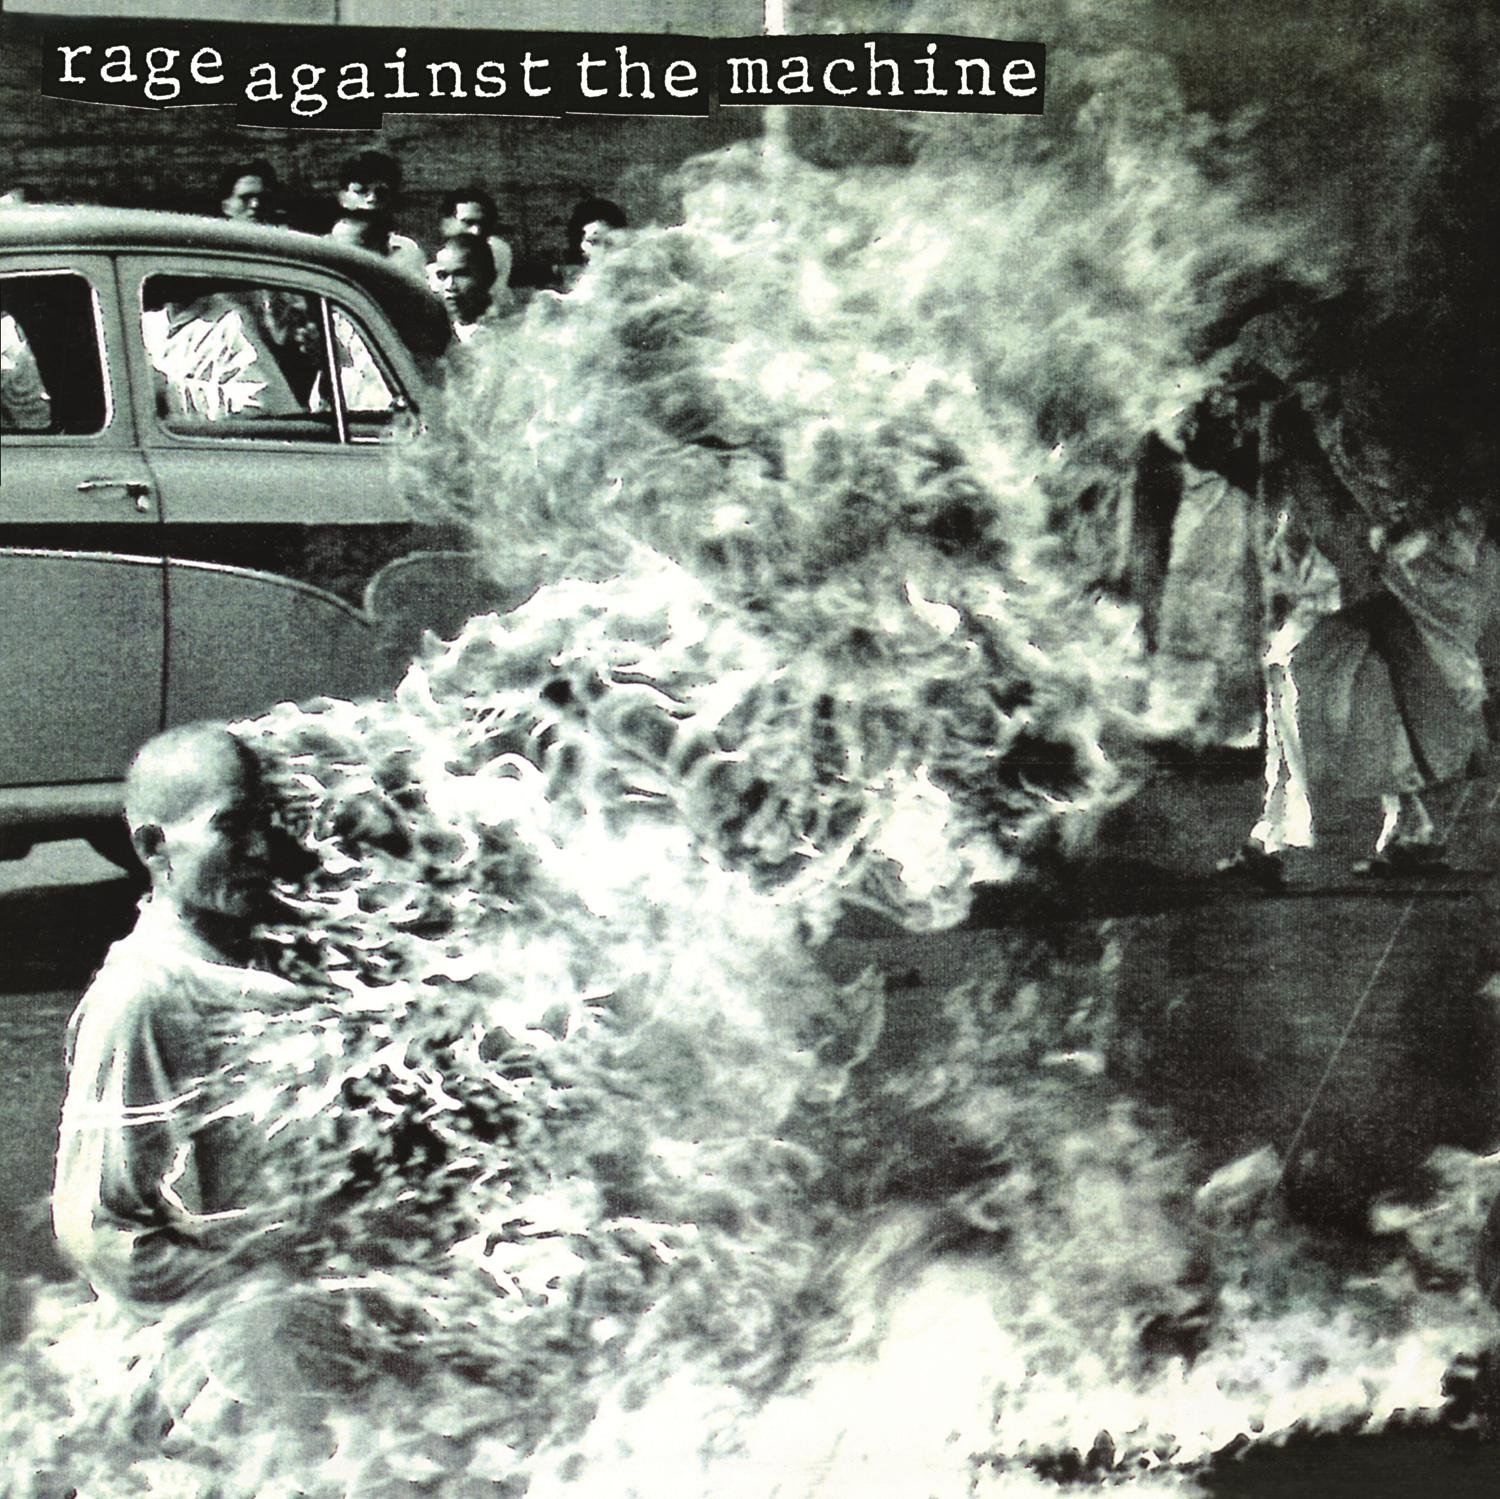 Rage Against The Machine by Sony